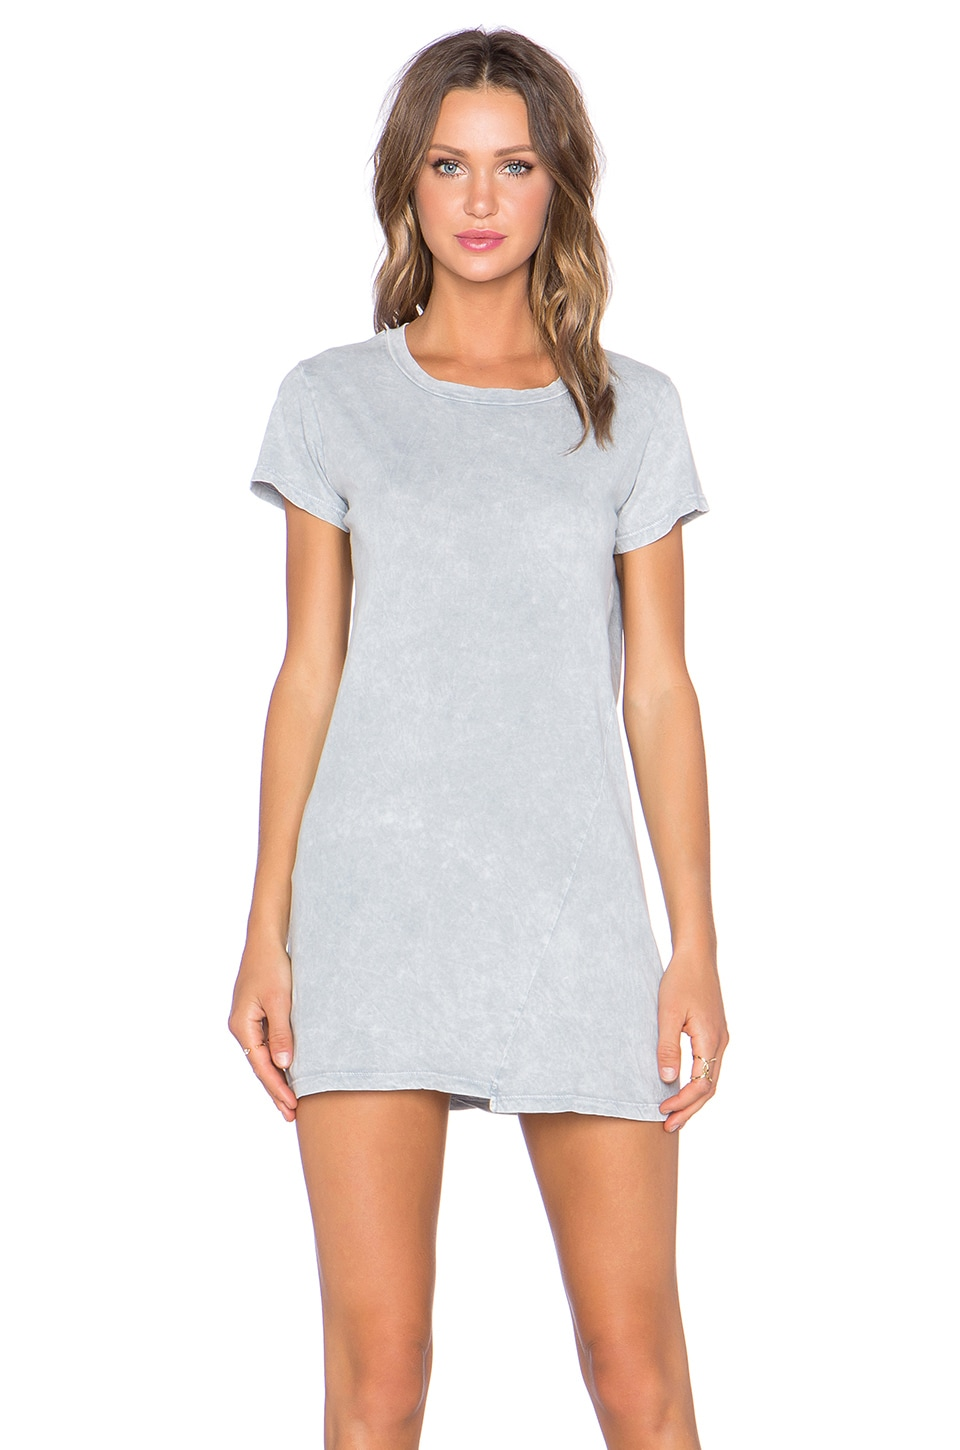 une Tara Tee Shirt Dress in Cement